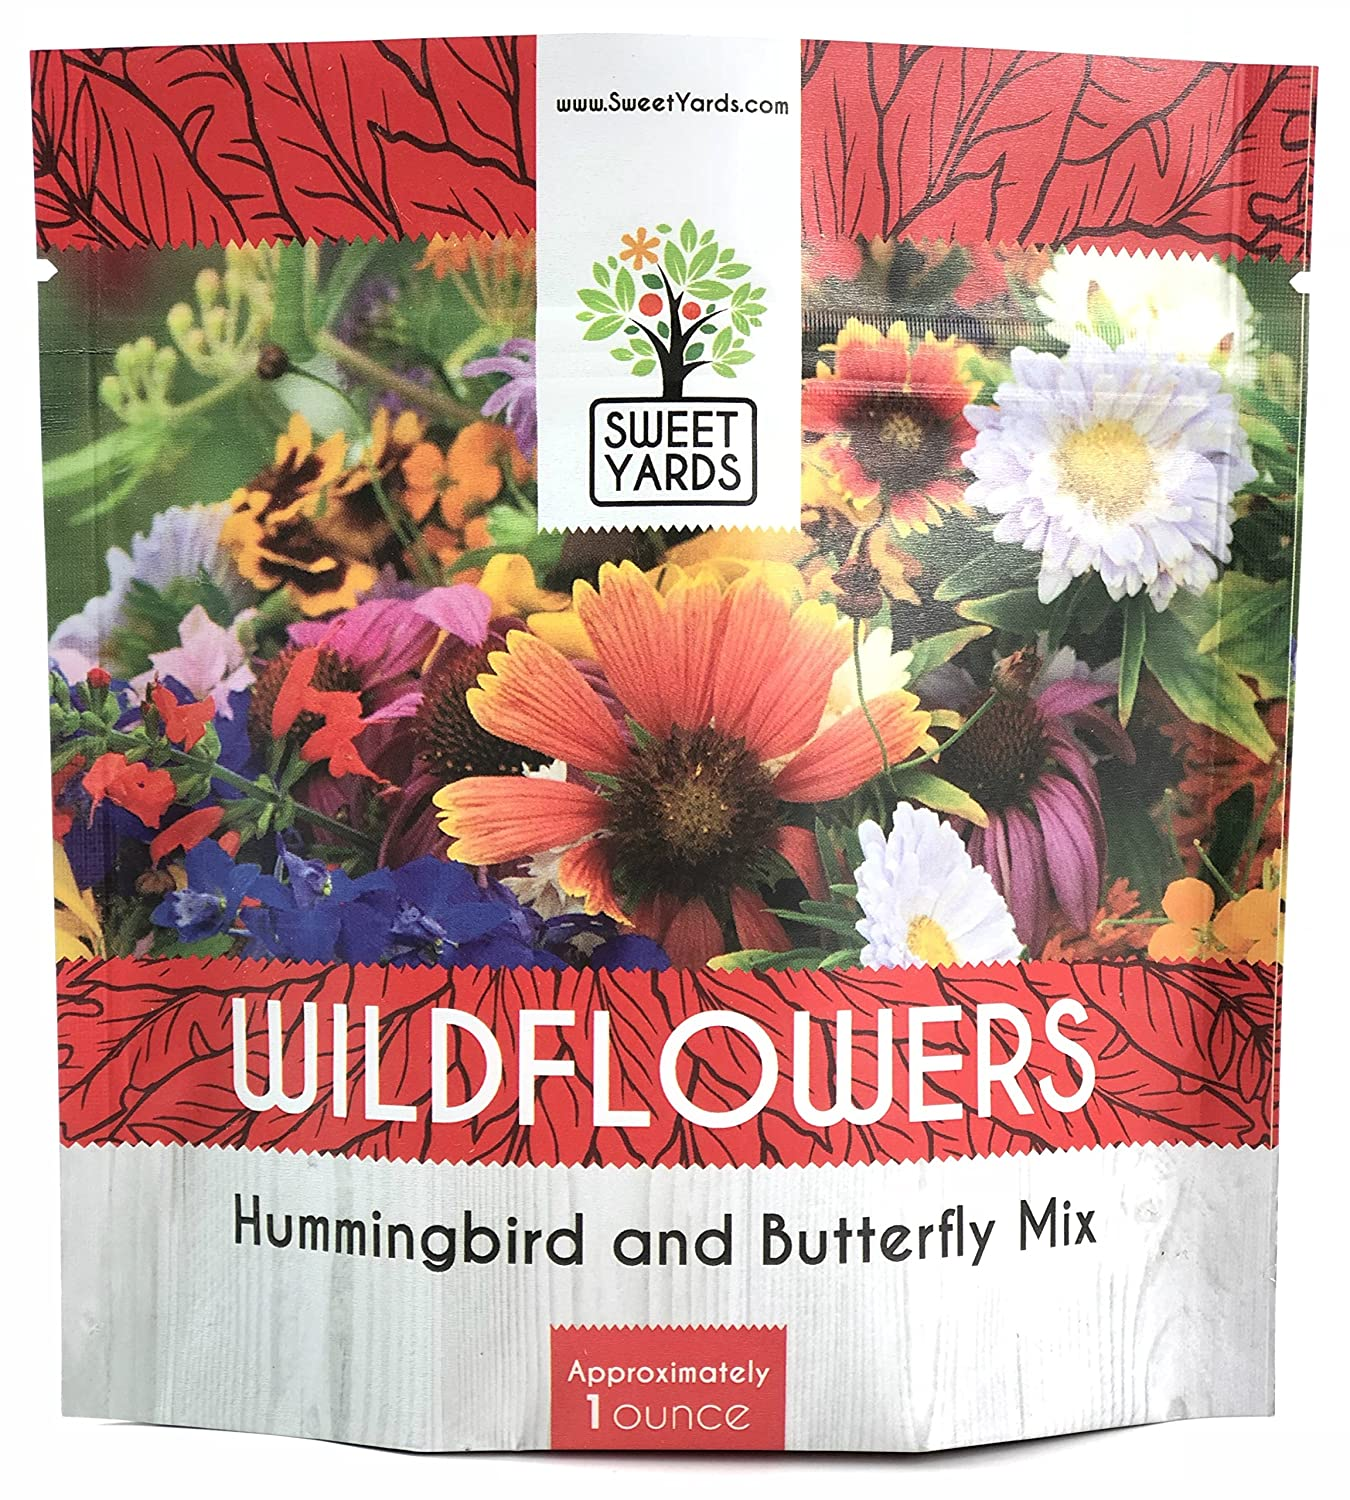 Wildflower Seeds Butterfly and Humming Bird Mix - Large 1 Ounce Packet 7, 500+ Seeds - 23 Open Pollinated Annual and Perennial Species Sweet Yards